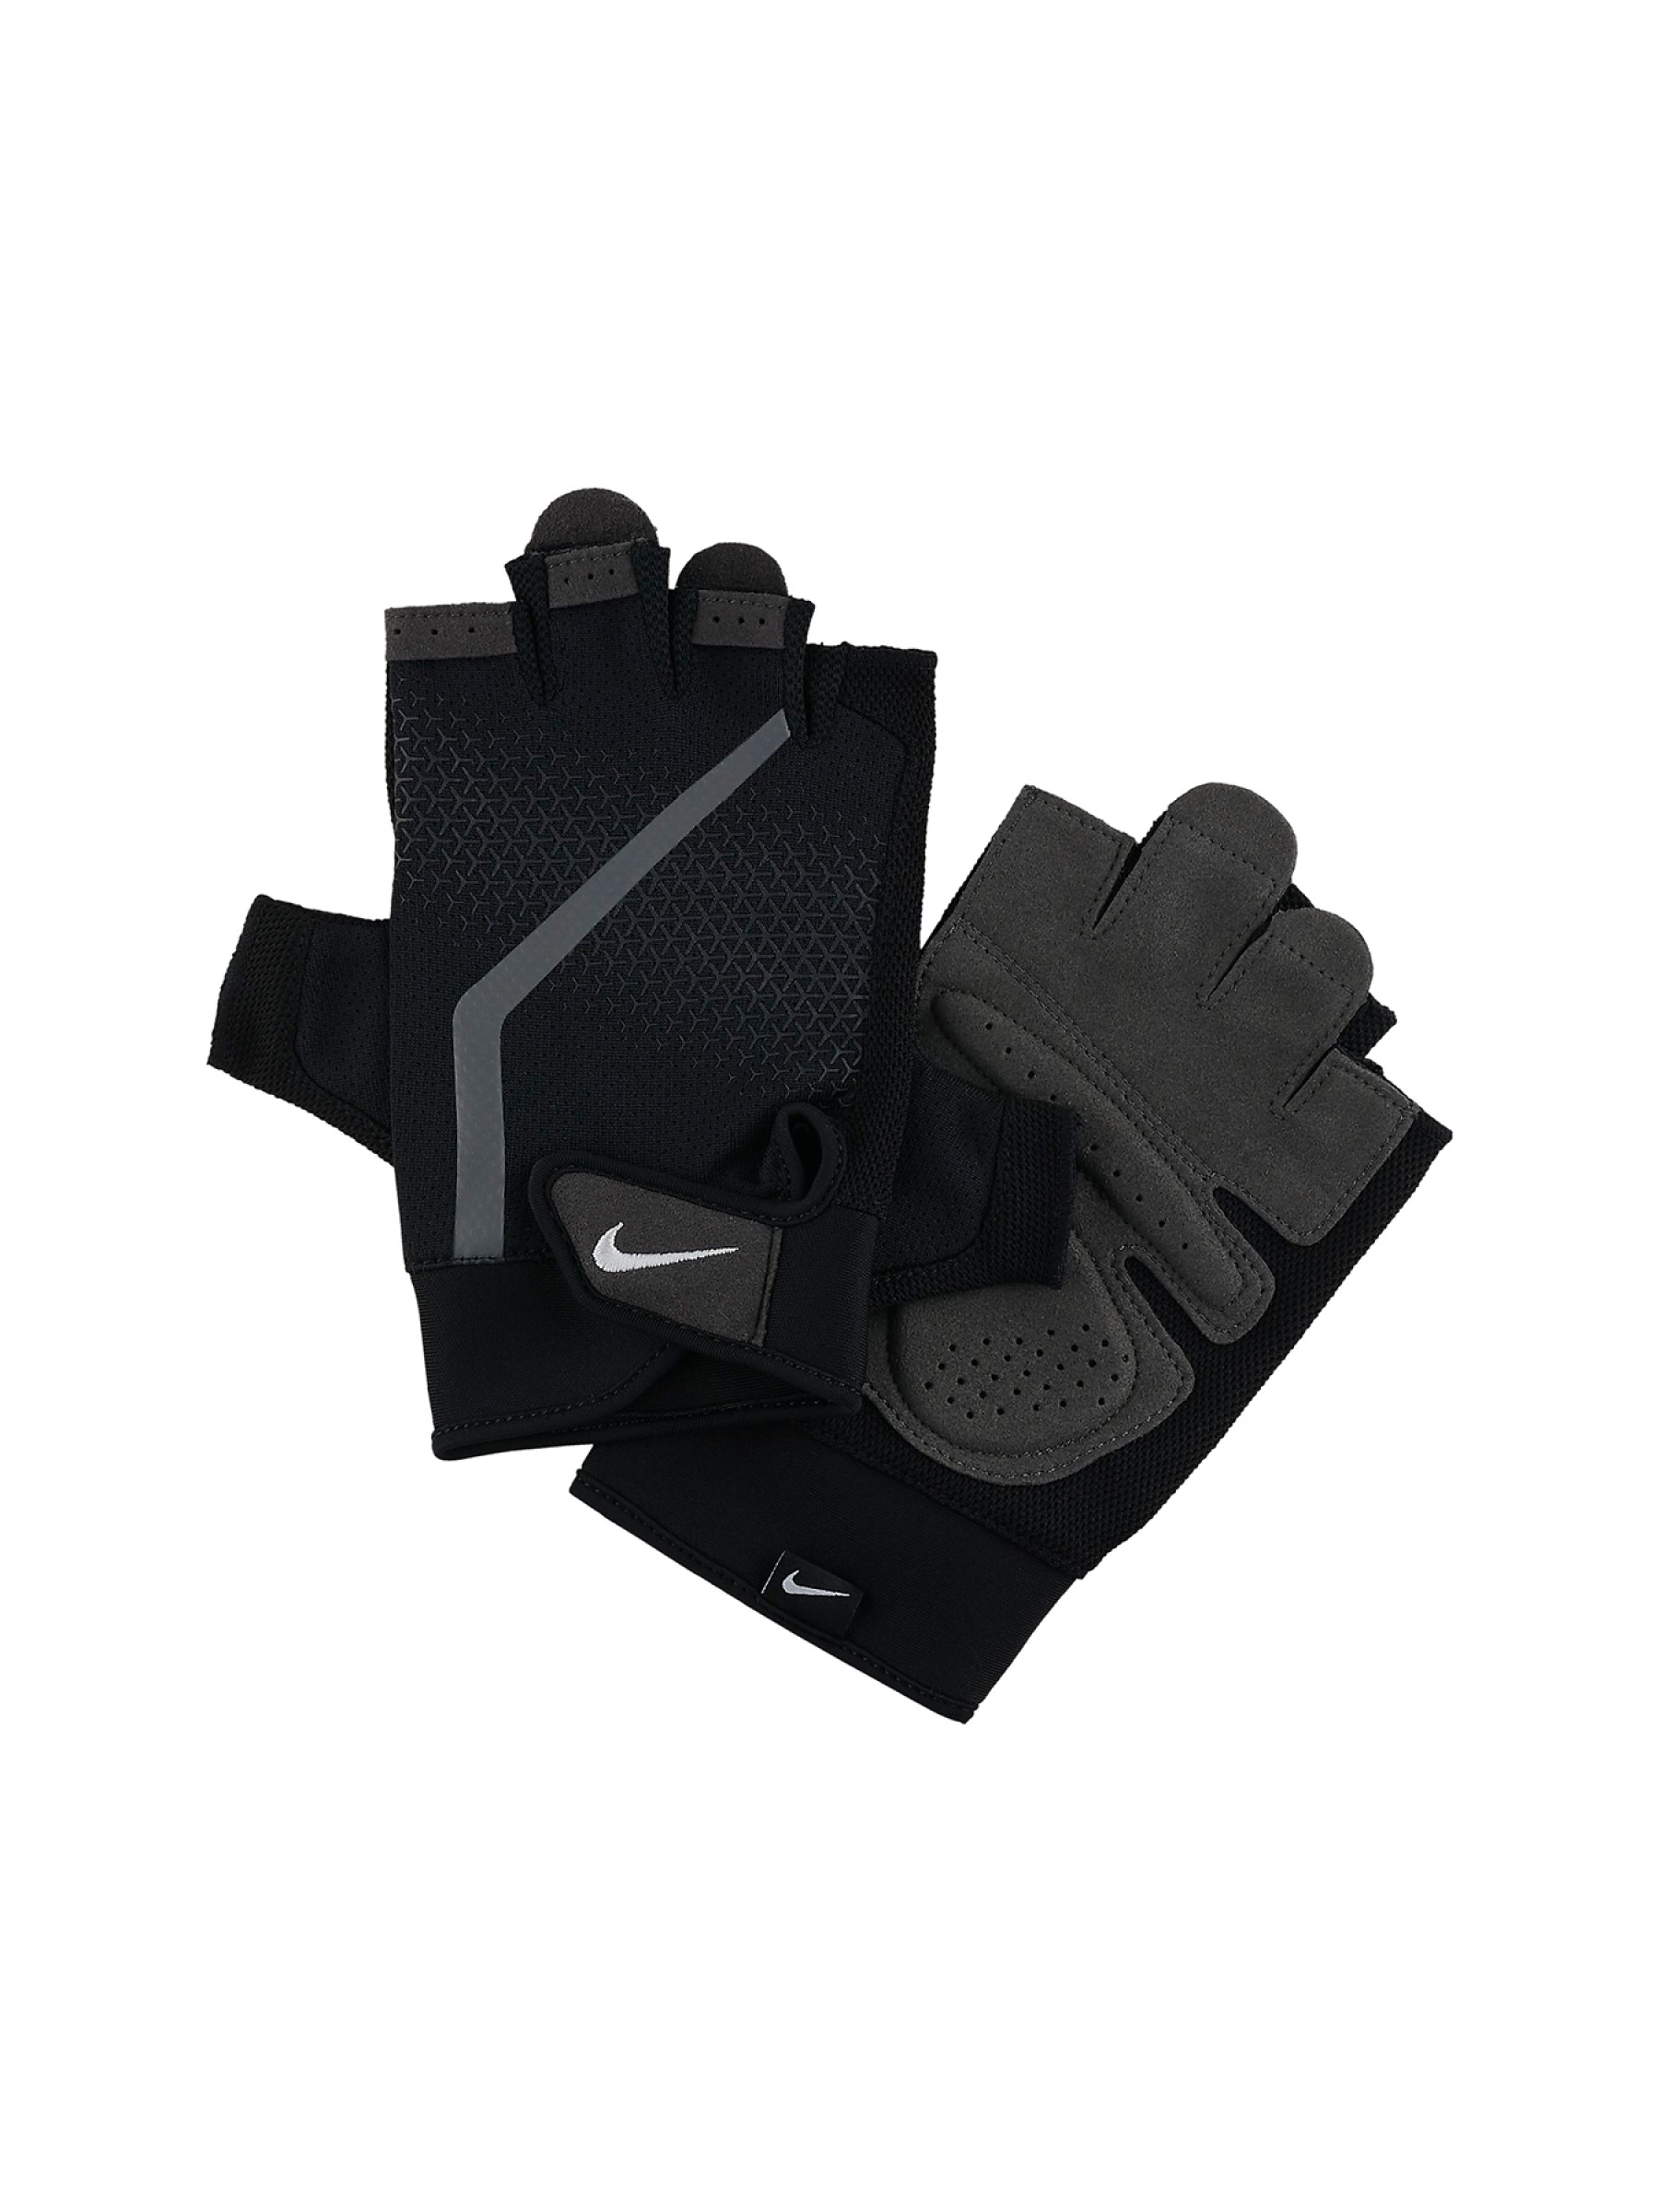 Nike - Guanto Extreme Fitness - A21 - NLG.C4-945